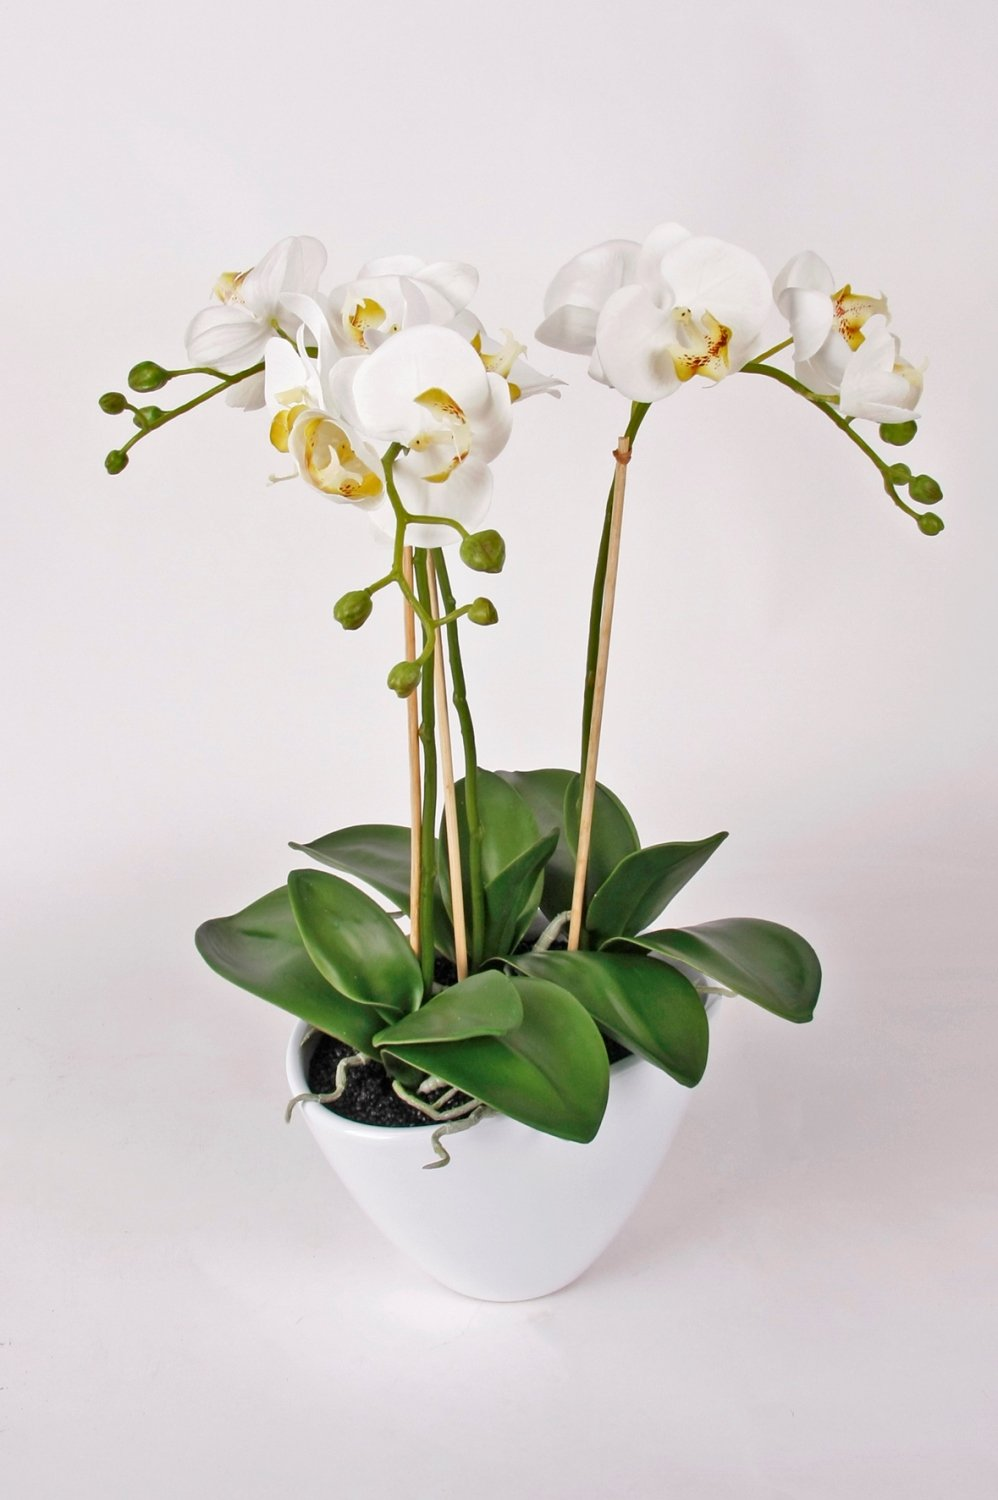 Artificial phalaenopsis orchid lahna in a small pot 3 sprigs artificial phalaenopsis orchid lahna in a small pot 3 sprigs white 18 45 cm silk orchid artificial flower artplants amazon kitchen dhlflorist Gallery